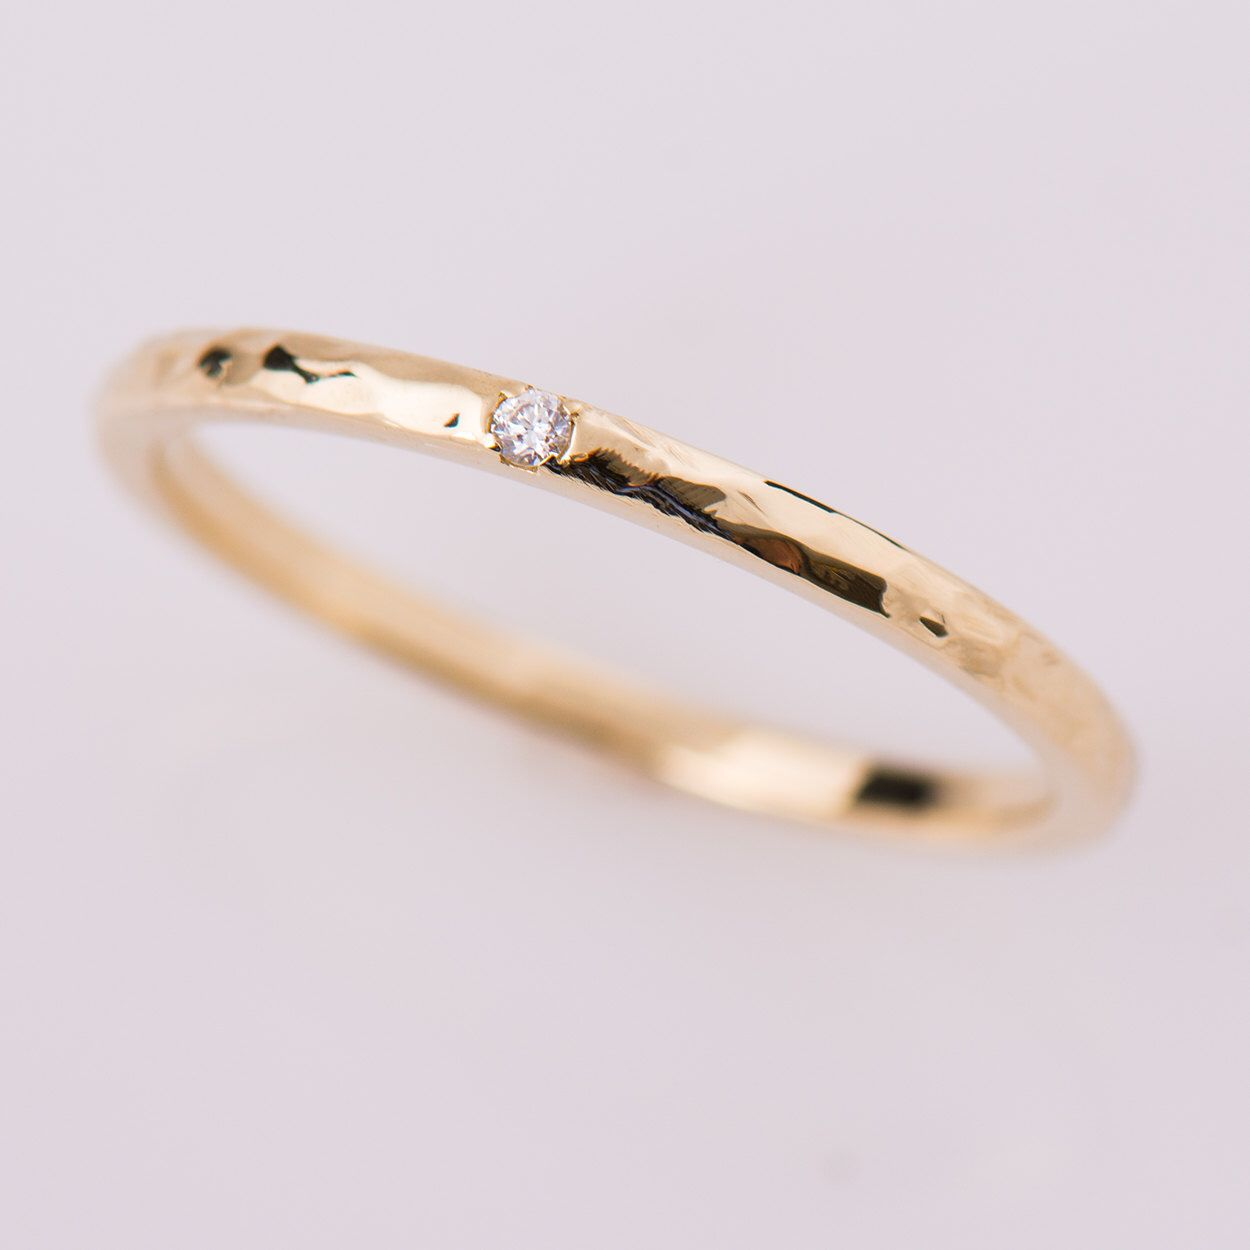 Hammered Textured Band, Single Diamond Ring, 14K Yellow Gold ...